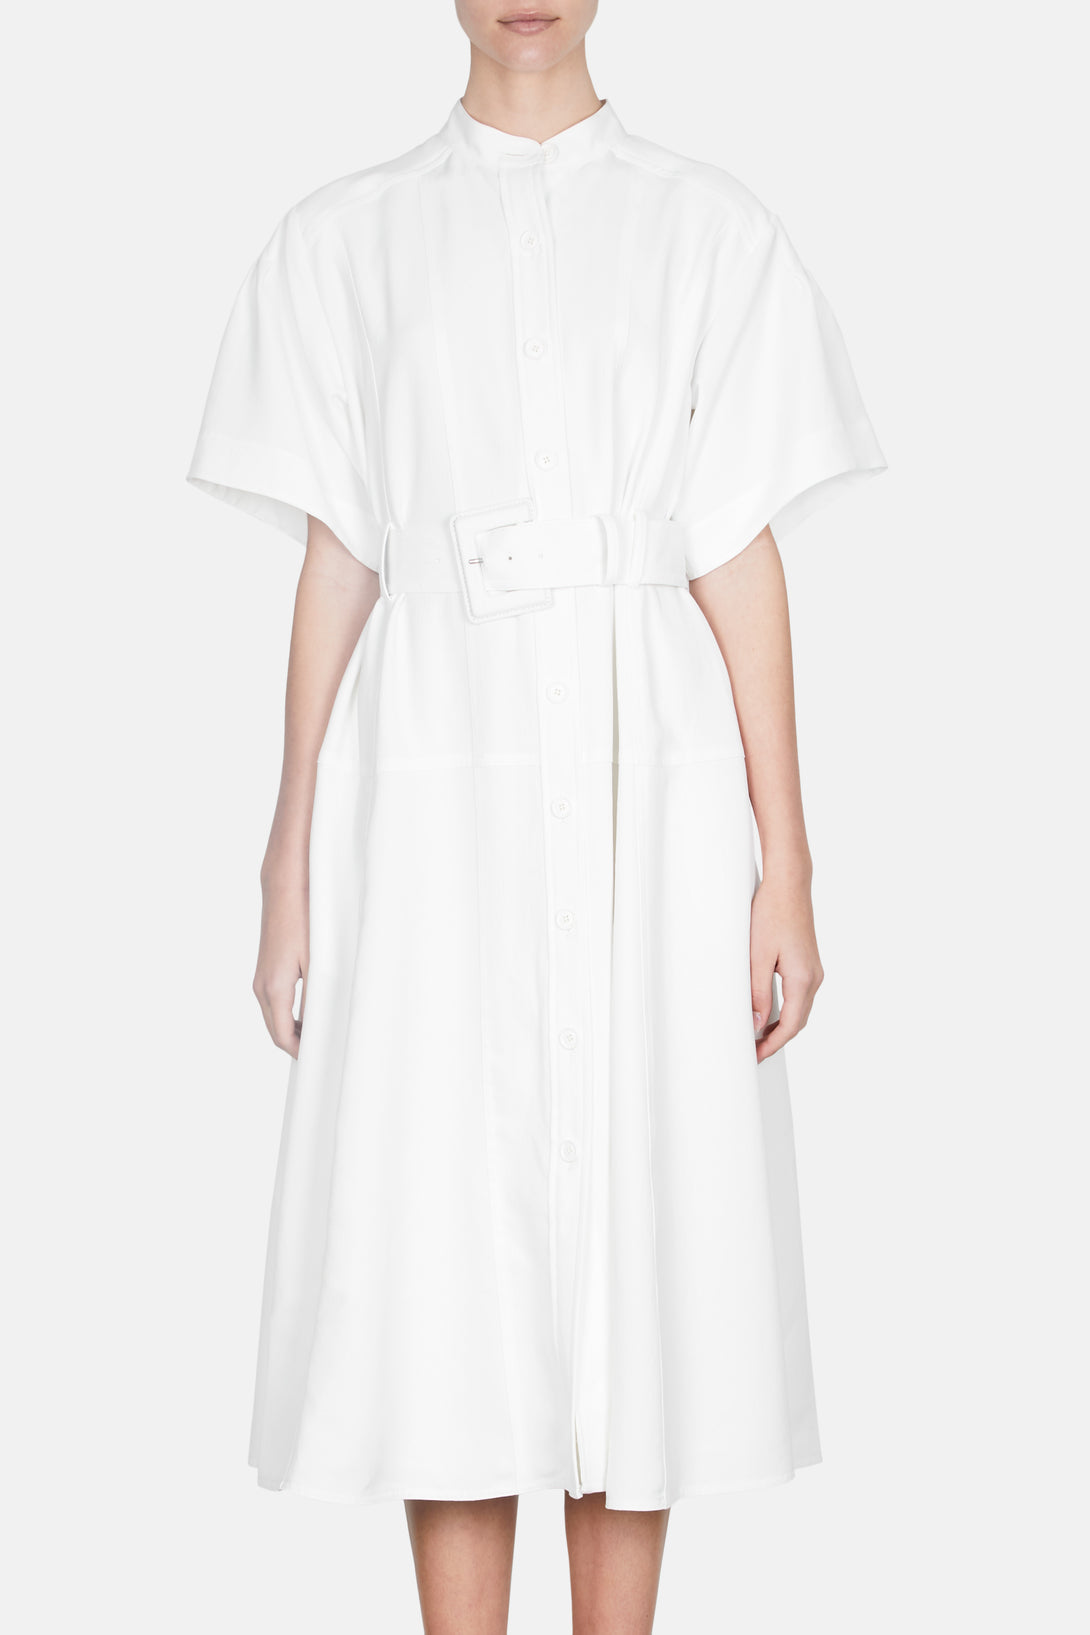 Short Sleeve Crepe Shirt Dress - Off White